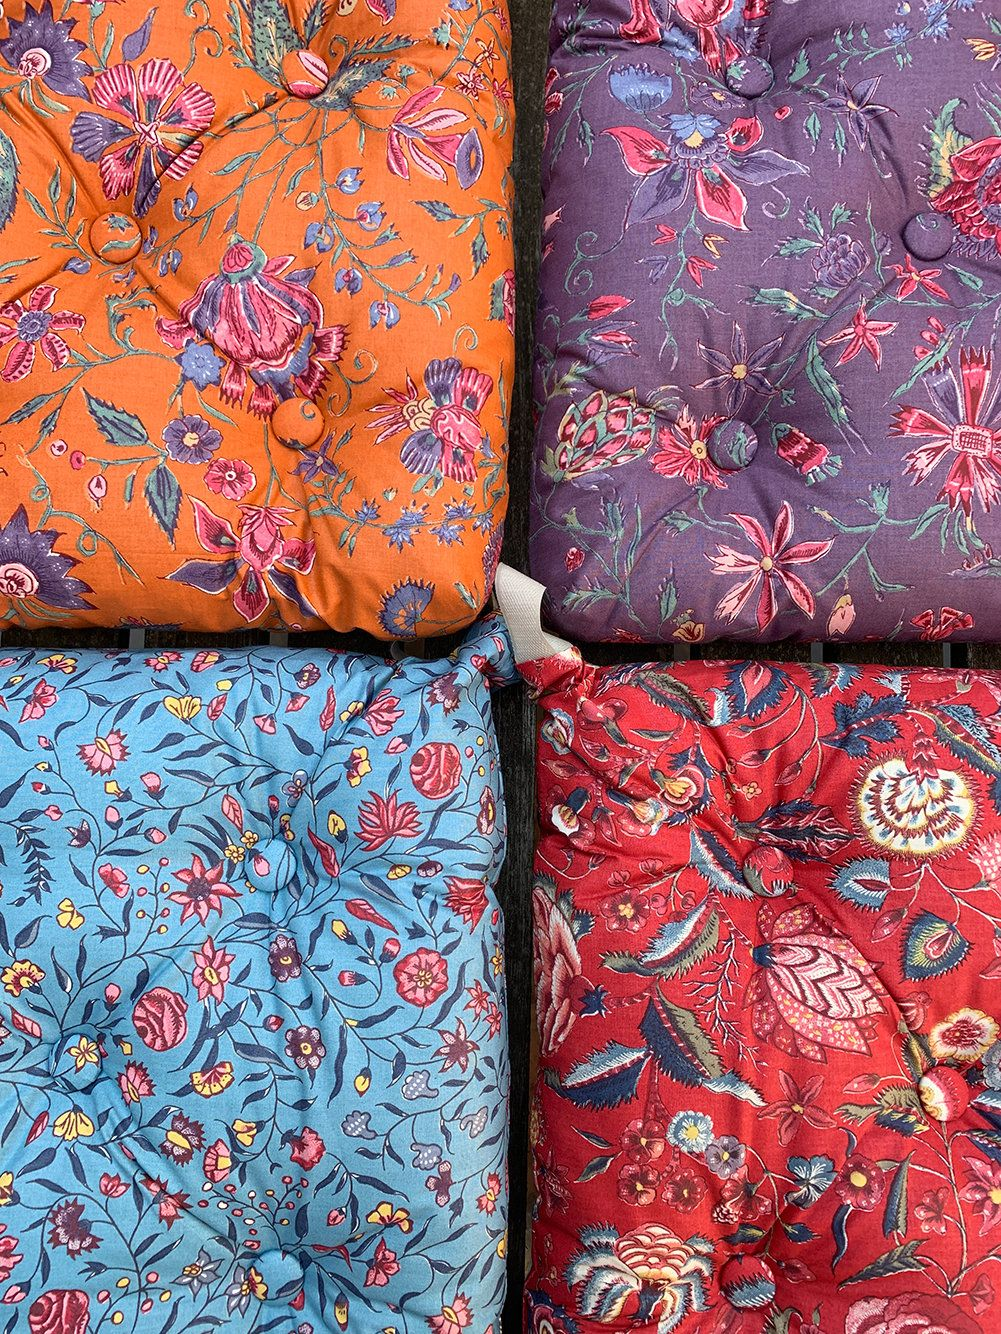 Floral Chair Pad Tufted Cushion Seat Padded Buttoned With Ties Etsy In 2020 Chair Pads Floral Chair Floral Seat Pads